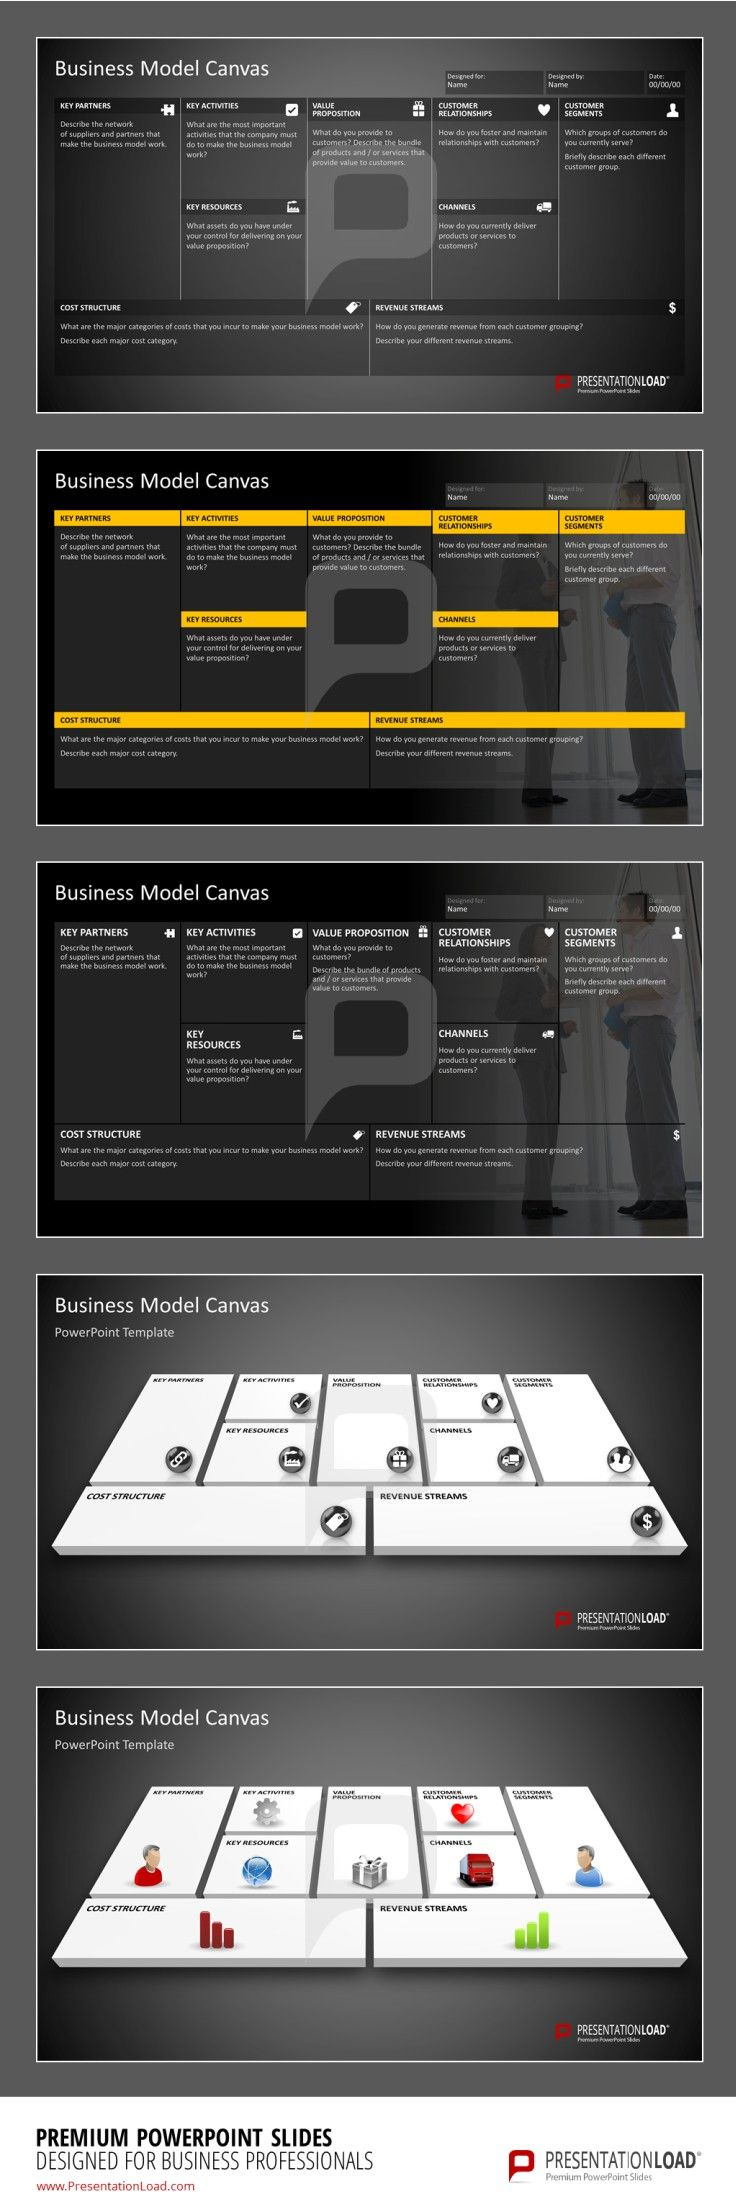 Business Model Canvas PowerPoint Template The slides can be modified with the PowerPoint provided editing tools and easily adjusted to your design requirements and process.  #presentationload www.presentationl...